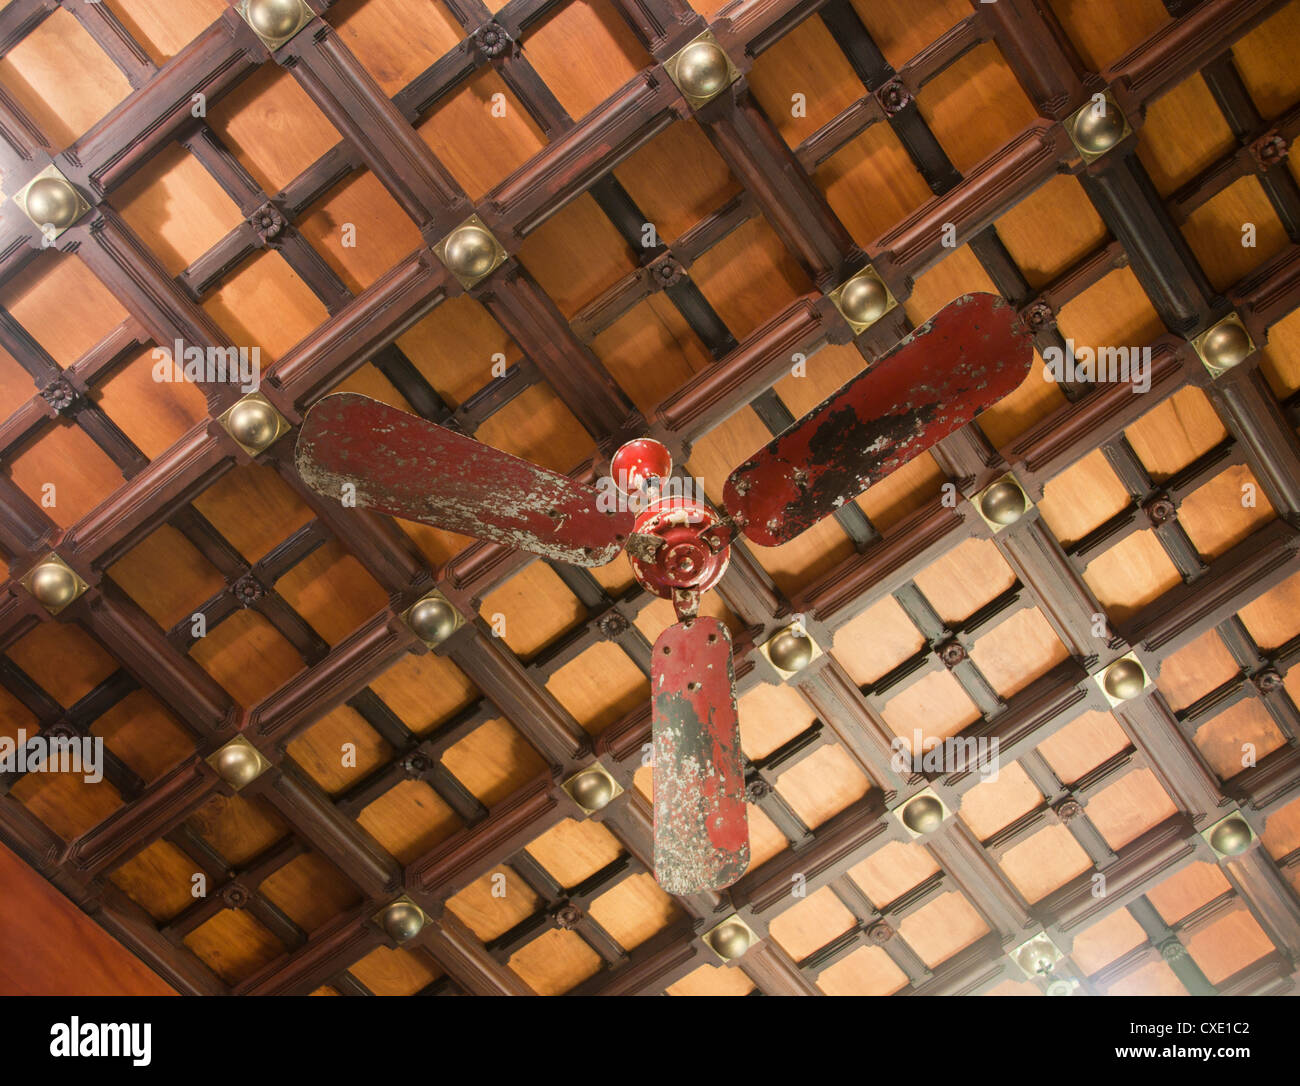 Old antique ceiling fan on wooden roof, India - Stock Image